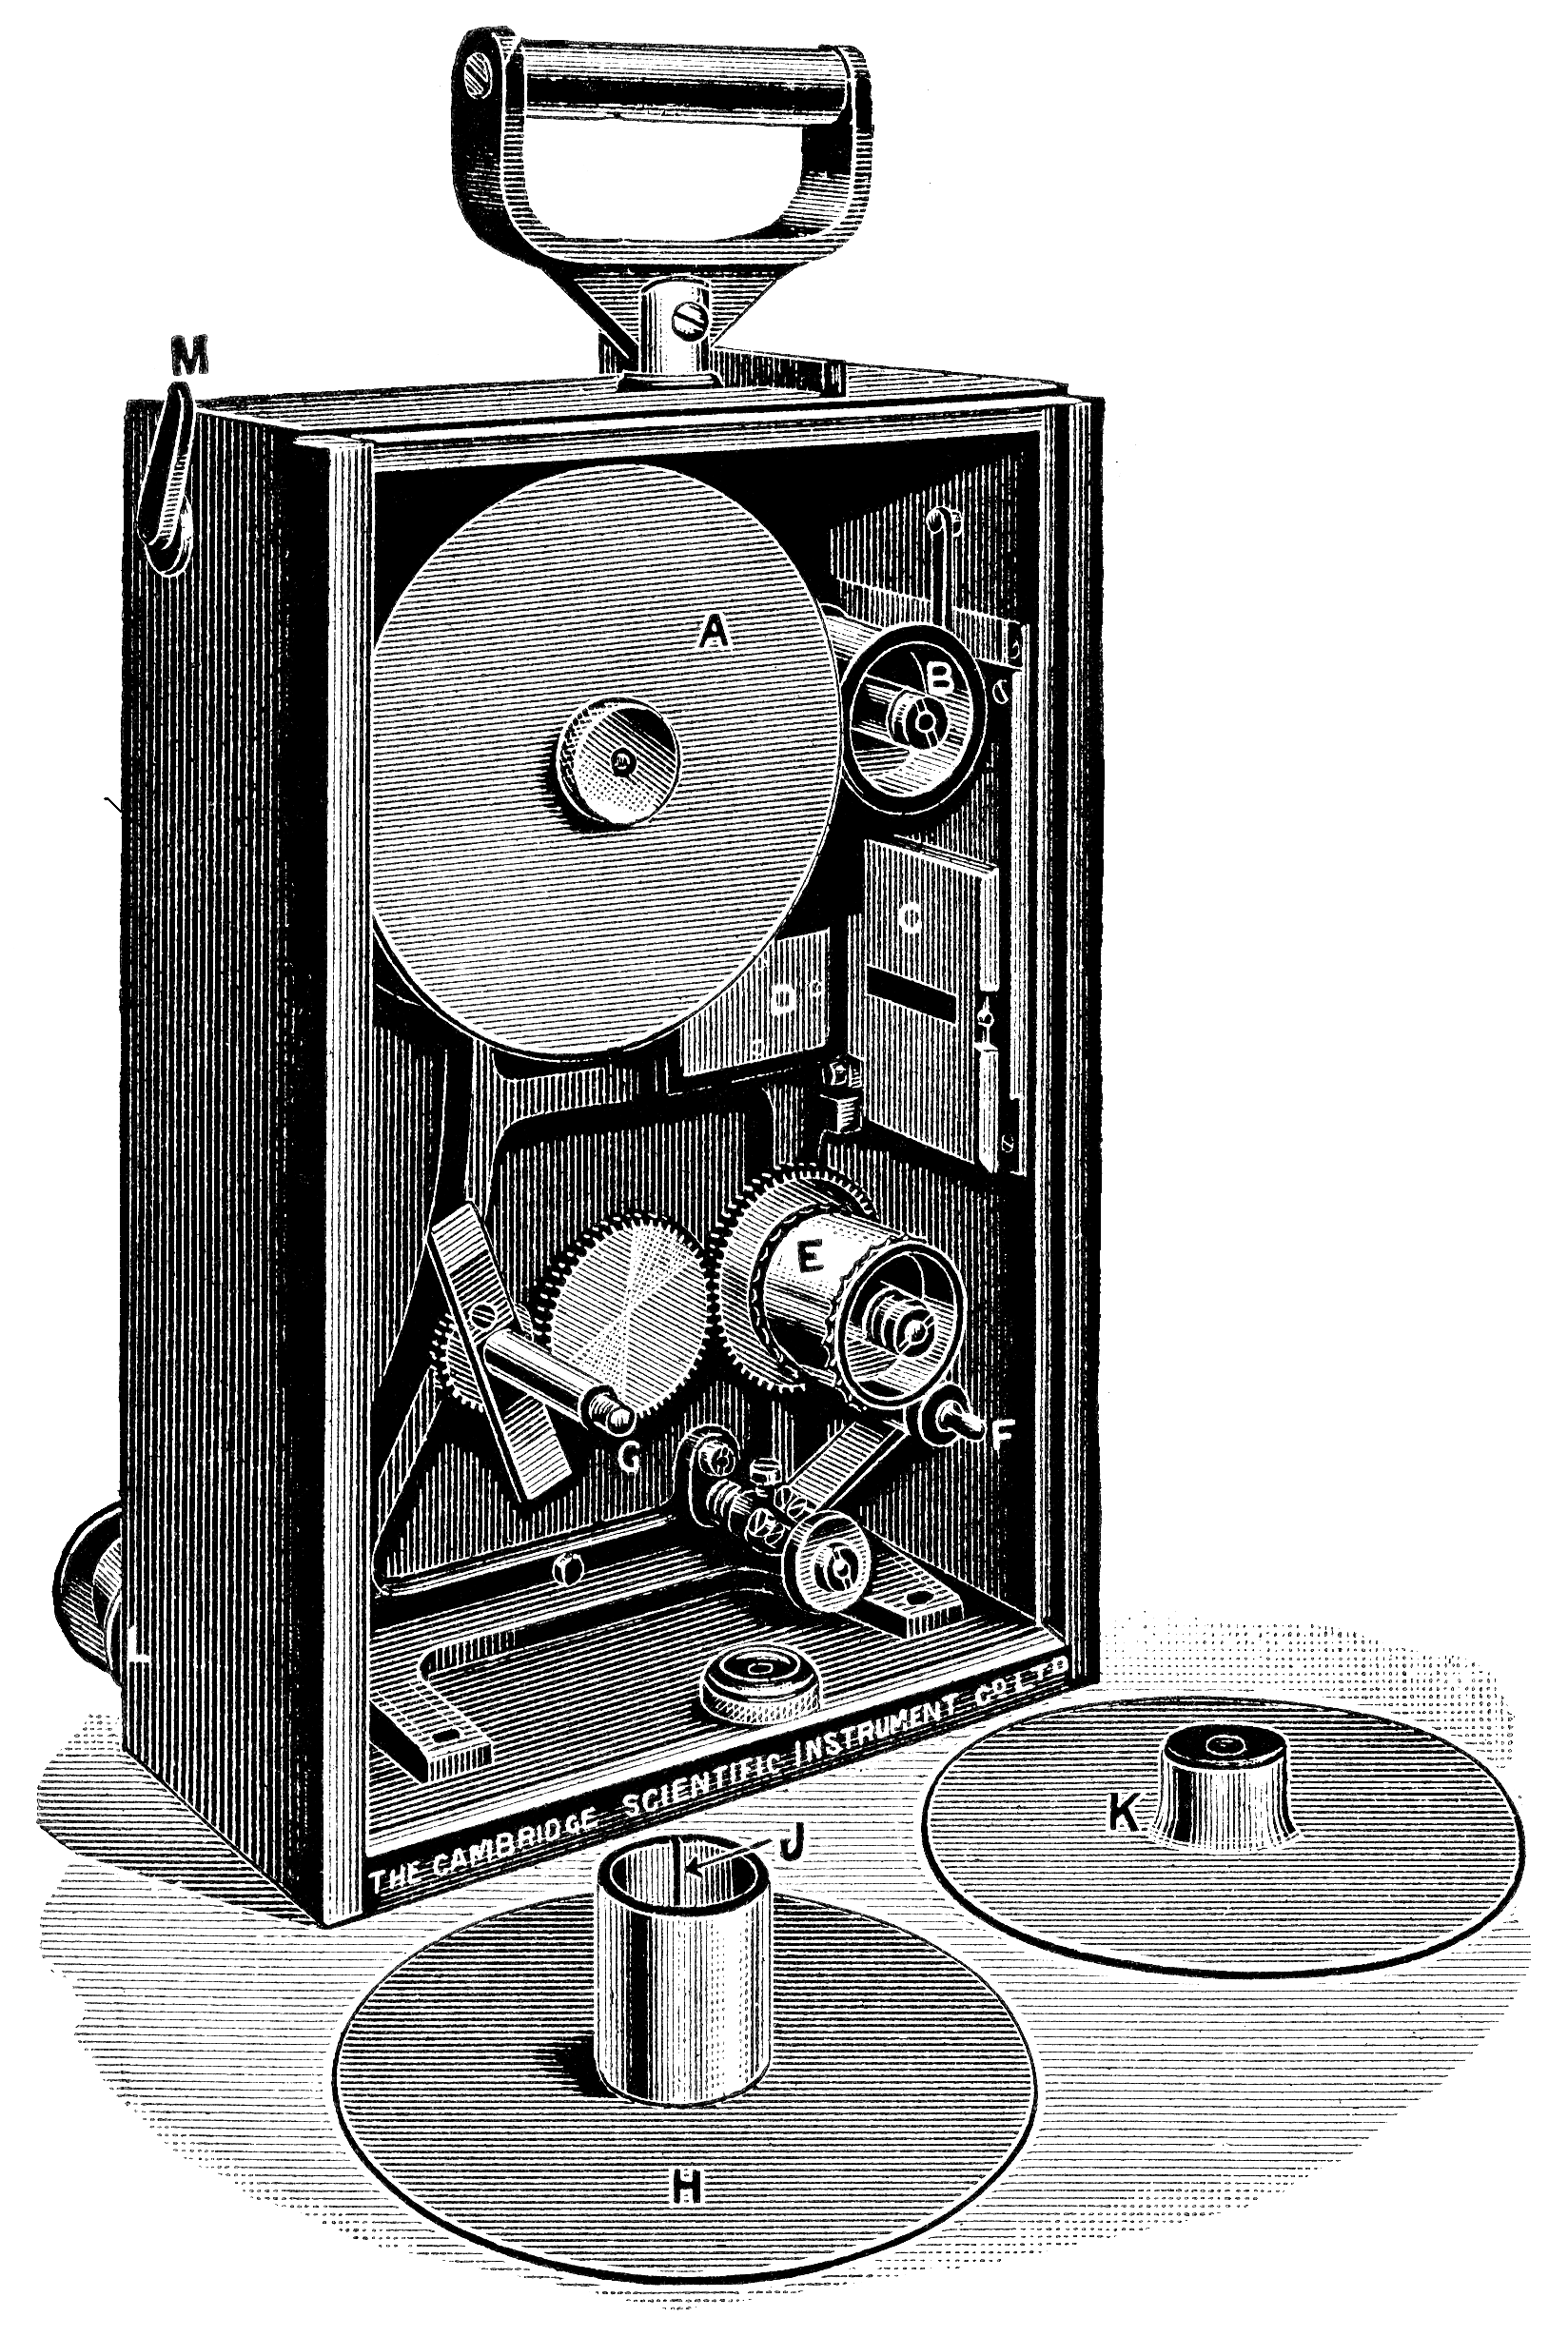 http://upload.wikimedia.org/wikipedia/commons/2/2f/Oscillograph_Cinematograph_Camera.png